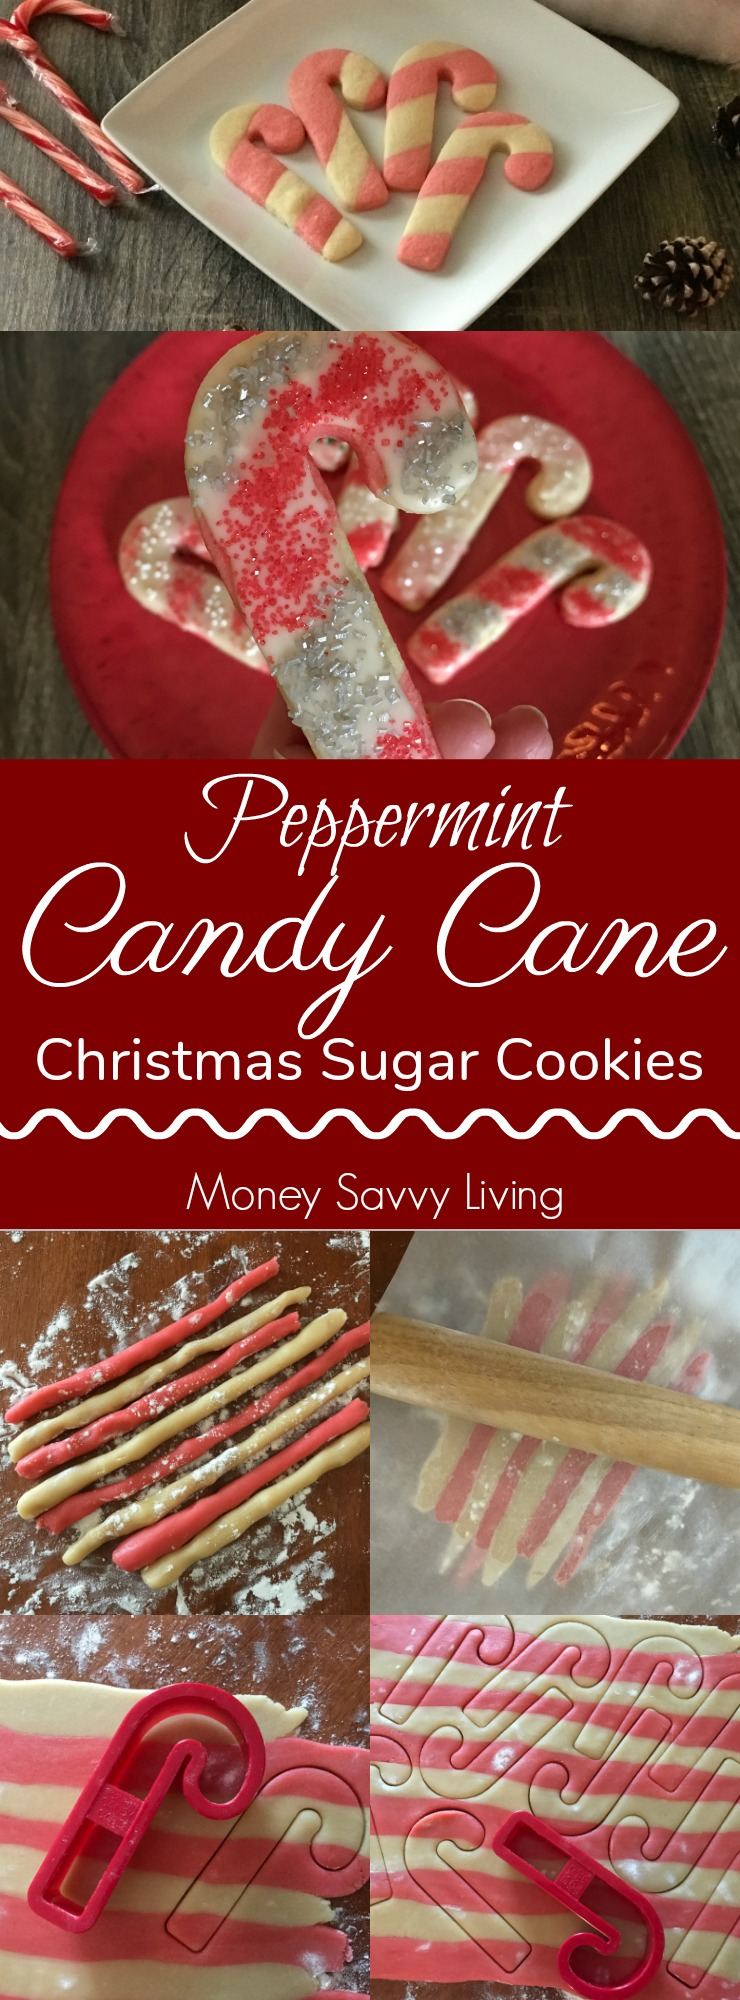 You are going to love this fun twist on the classic Christmas sugar cookie! Peppermint Candy Cane Christmas Sugar Cookies #Christmas #cookies #sugarcookies #candycanes #peppermint #christmascookies #cookierecipes #frostedcookies